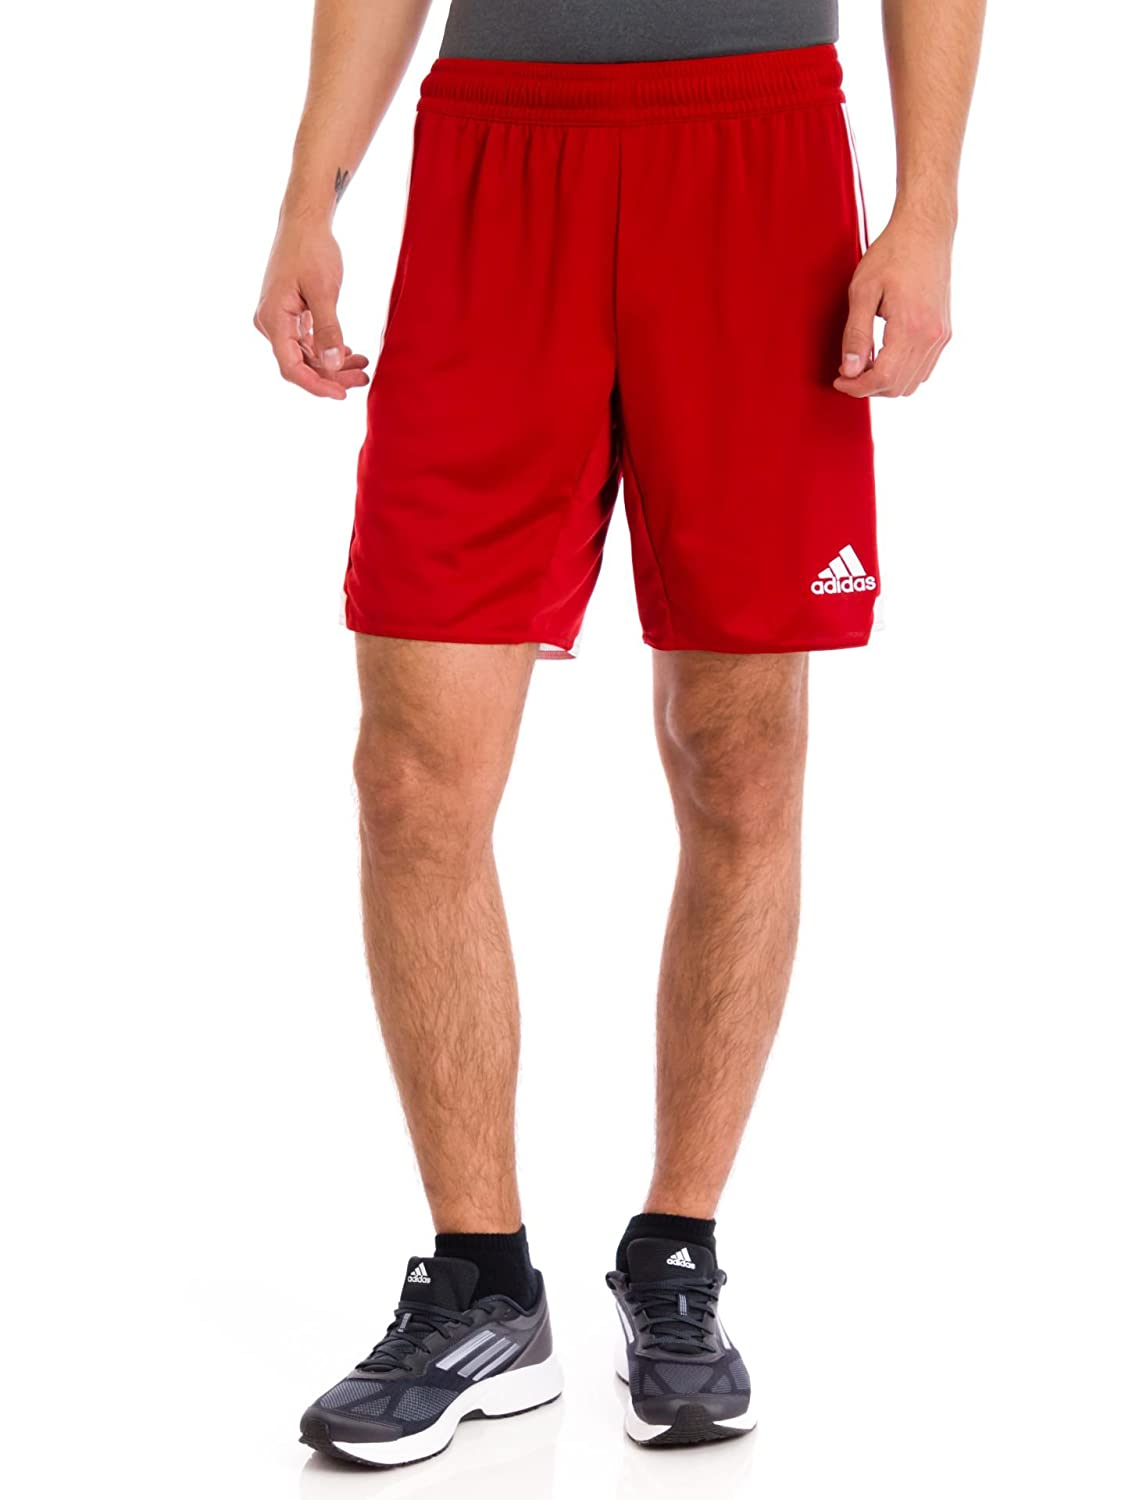 Adidas Mens Tiro 13 Shorts Sports Outdoors Golf Wiring Schematicit Shortsi Put The Positive Battery Cable On